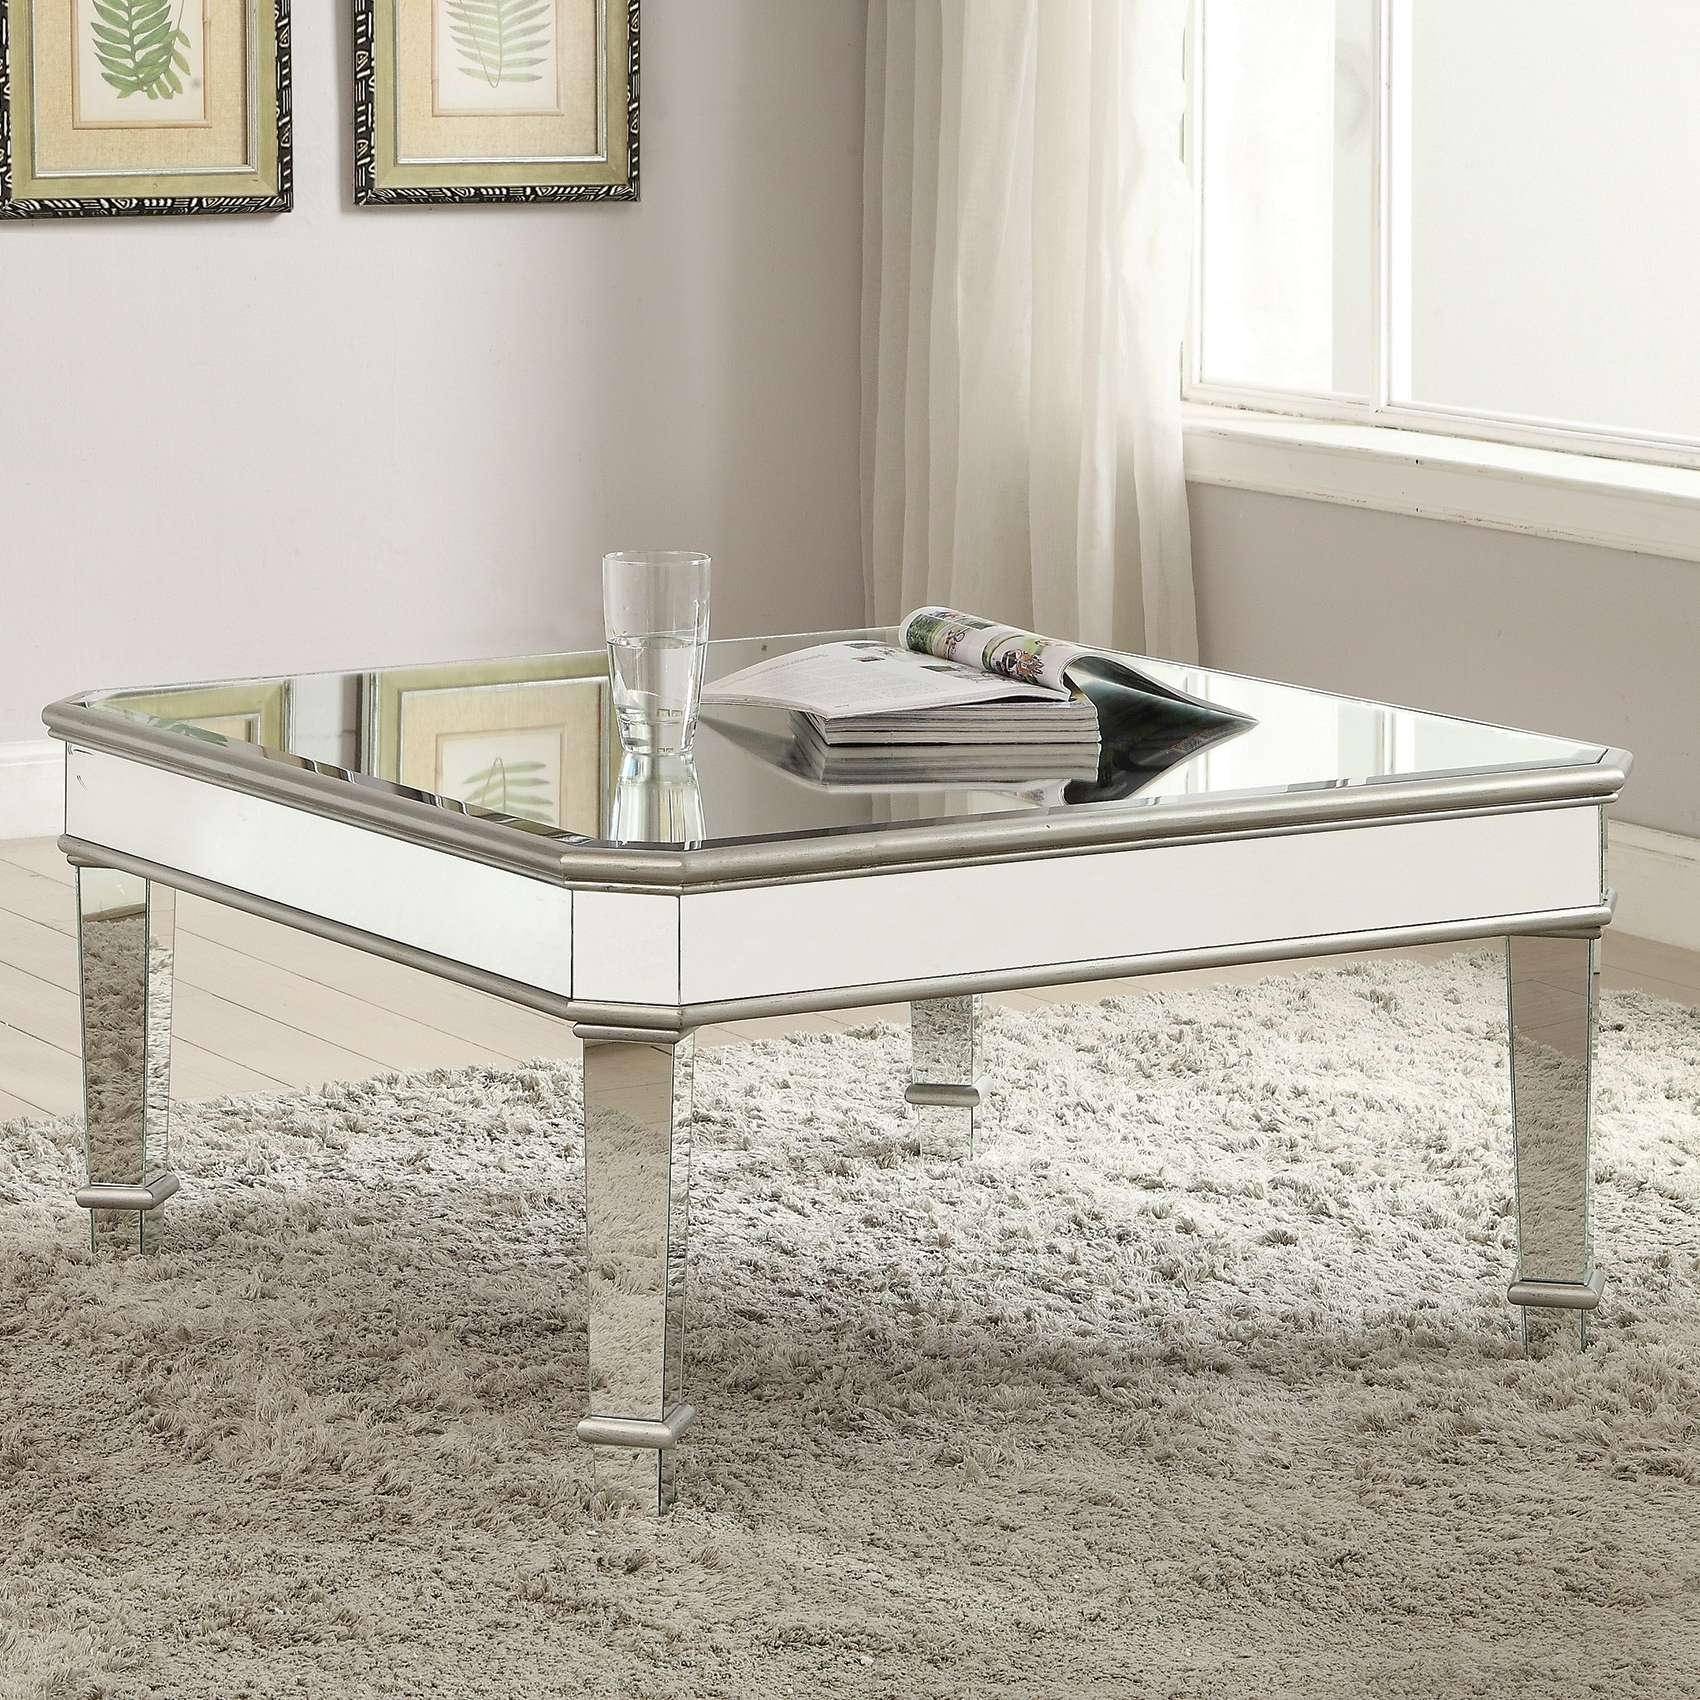 Most Recent Small Mirrored Coffee Tables Inside Coffee Tables : Black Mirrored Glass Bedside Table Small Mirror (View 8 of 20)